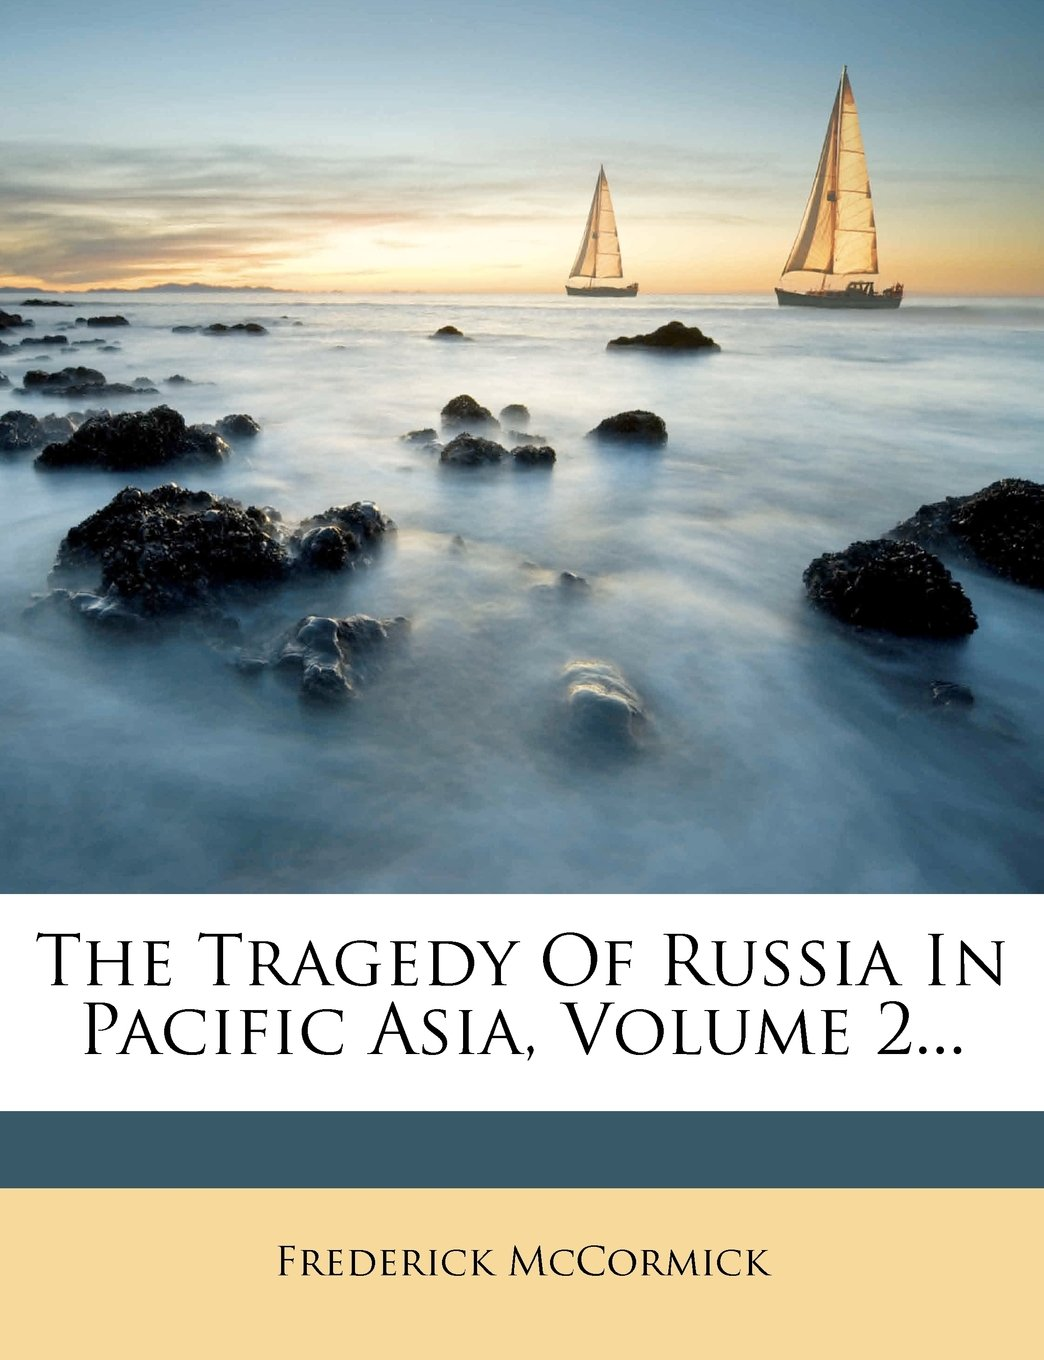 Download The Tragedy Of Russia In Pacific Asia, Volume 2... PDF